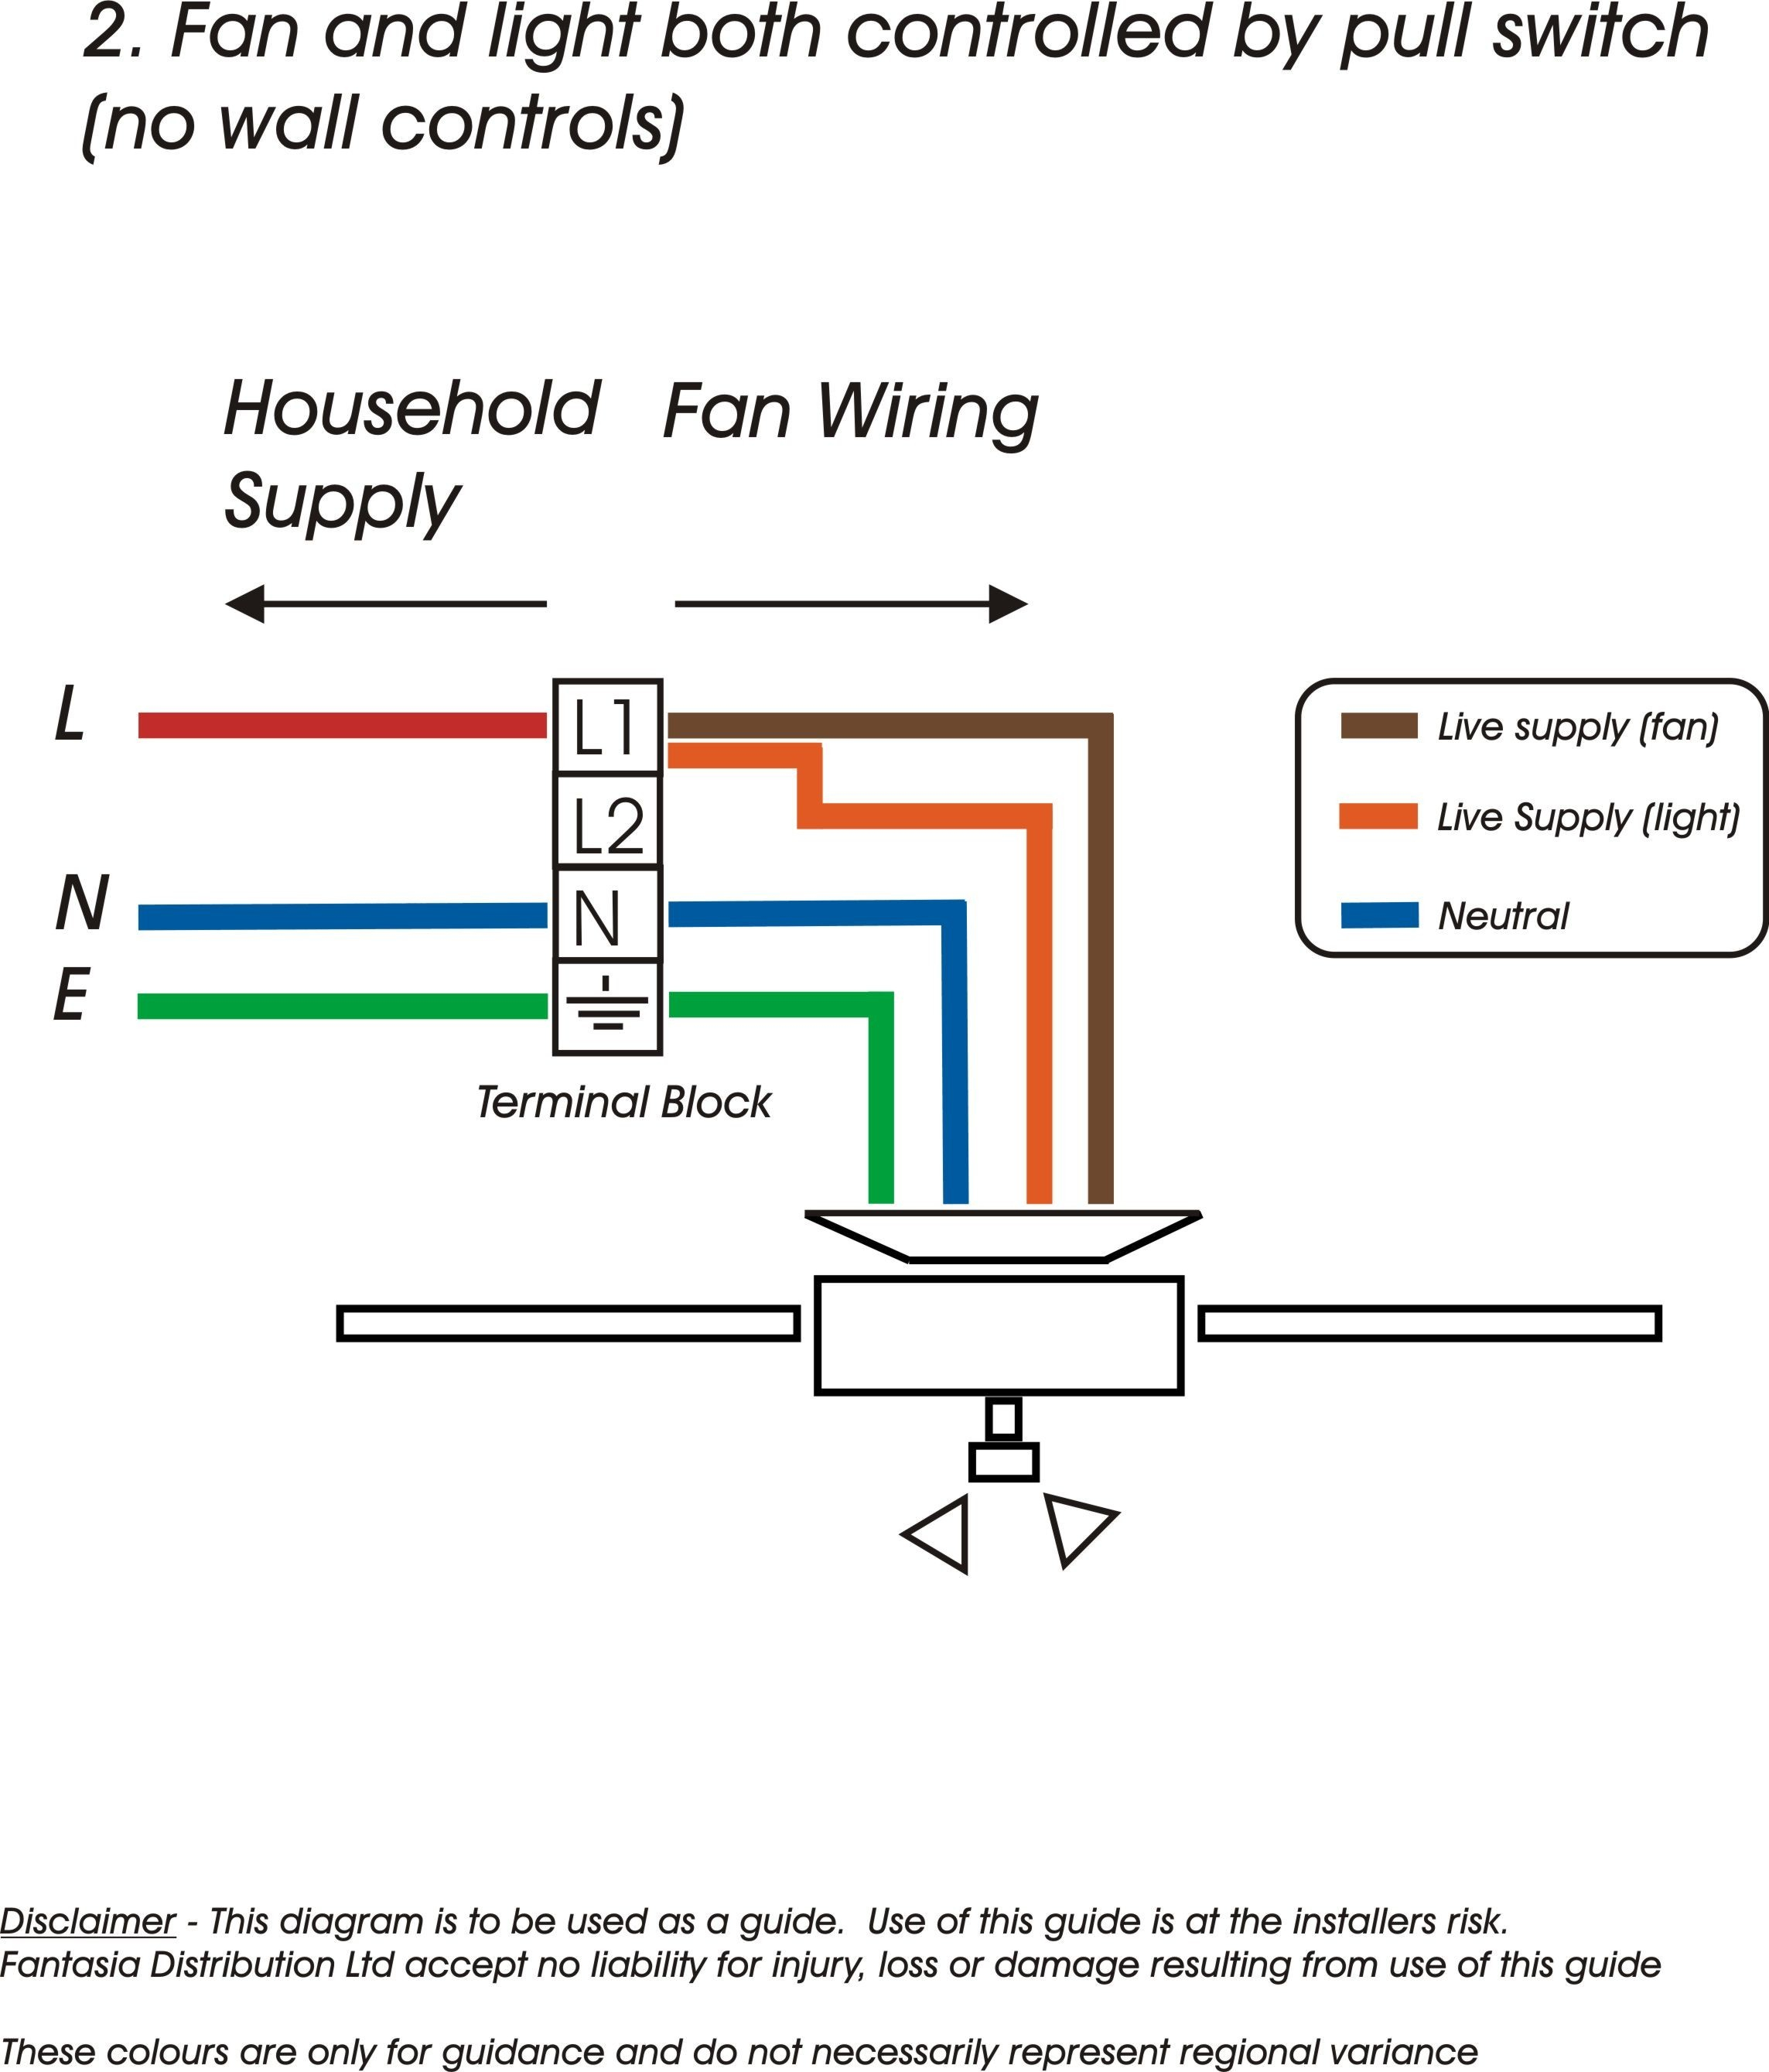 canarm ceiling fan wiring diagram Collection-Exhaust Fan Wiring Diagram Fresh Wiring Diagram for Canarm Exhaust Fan Fresh Canarm Exhaust Fan 15-a